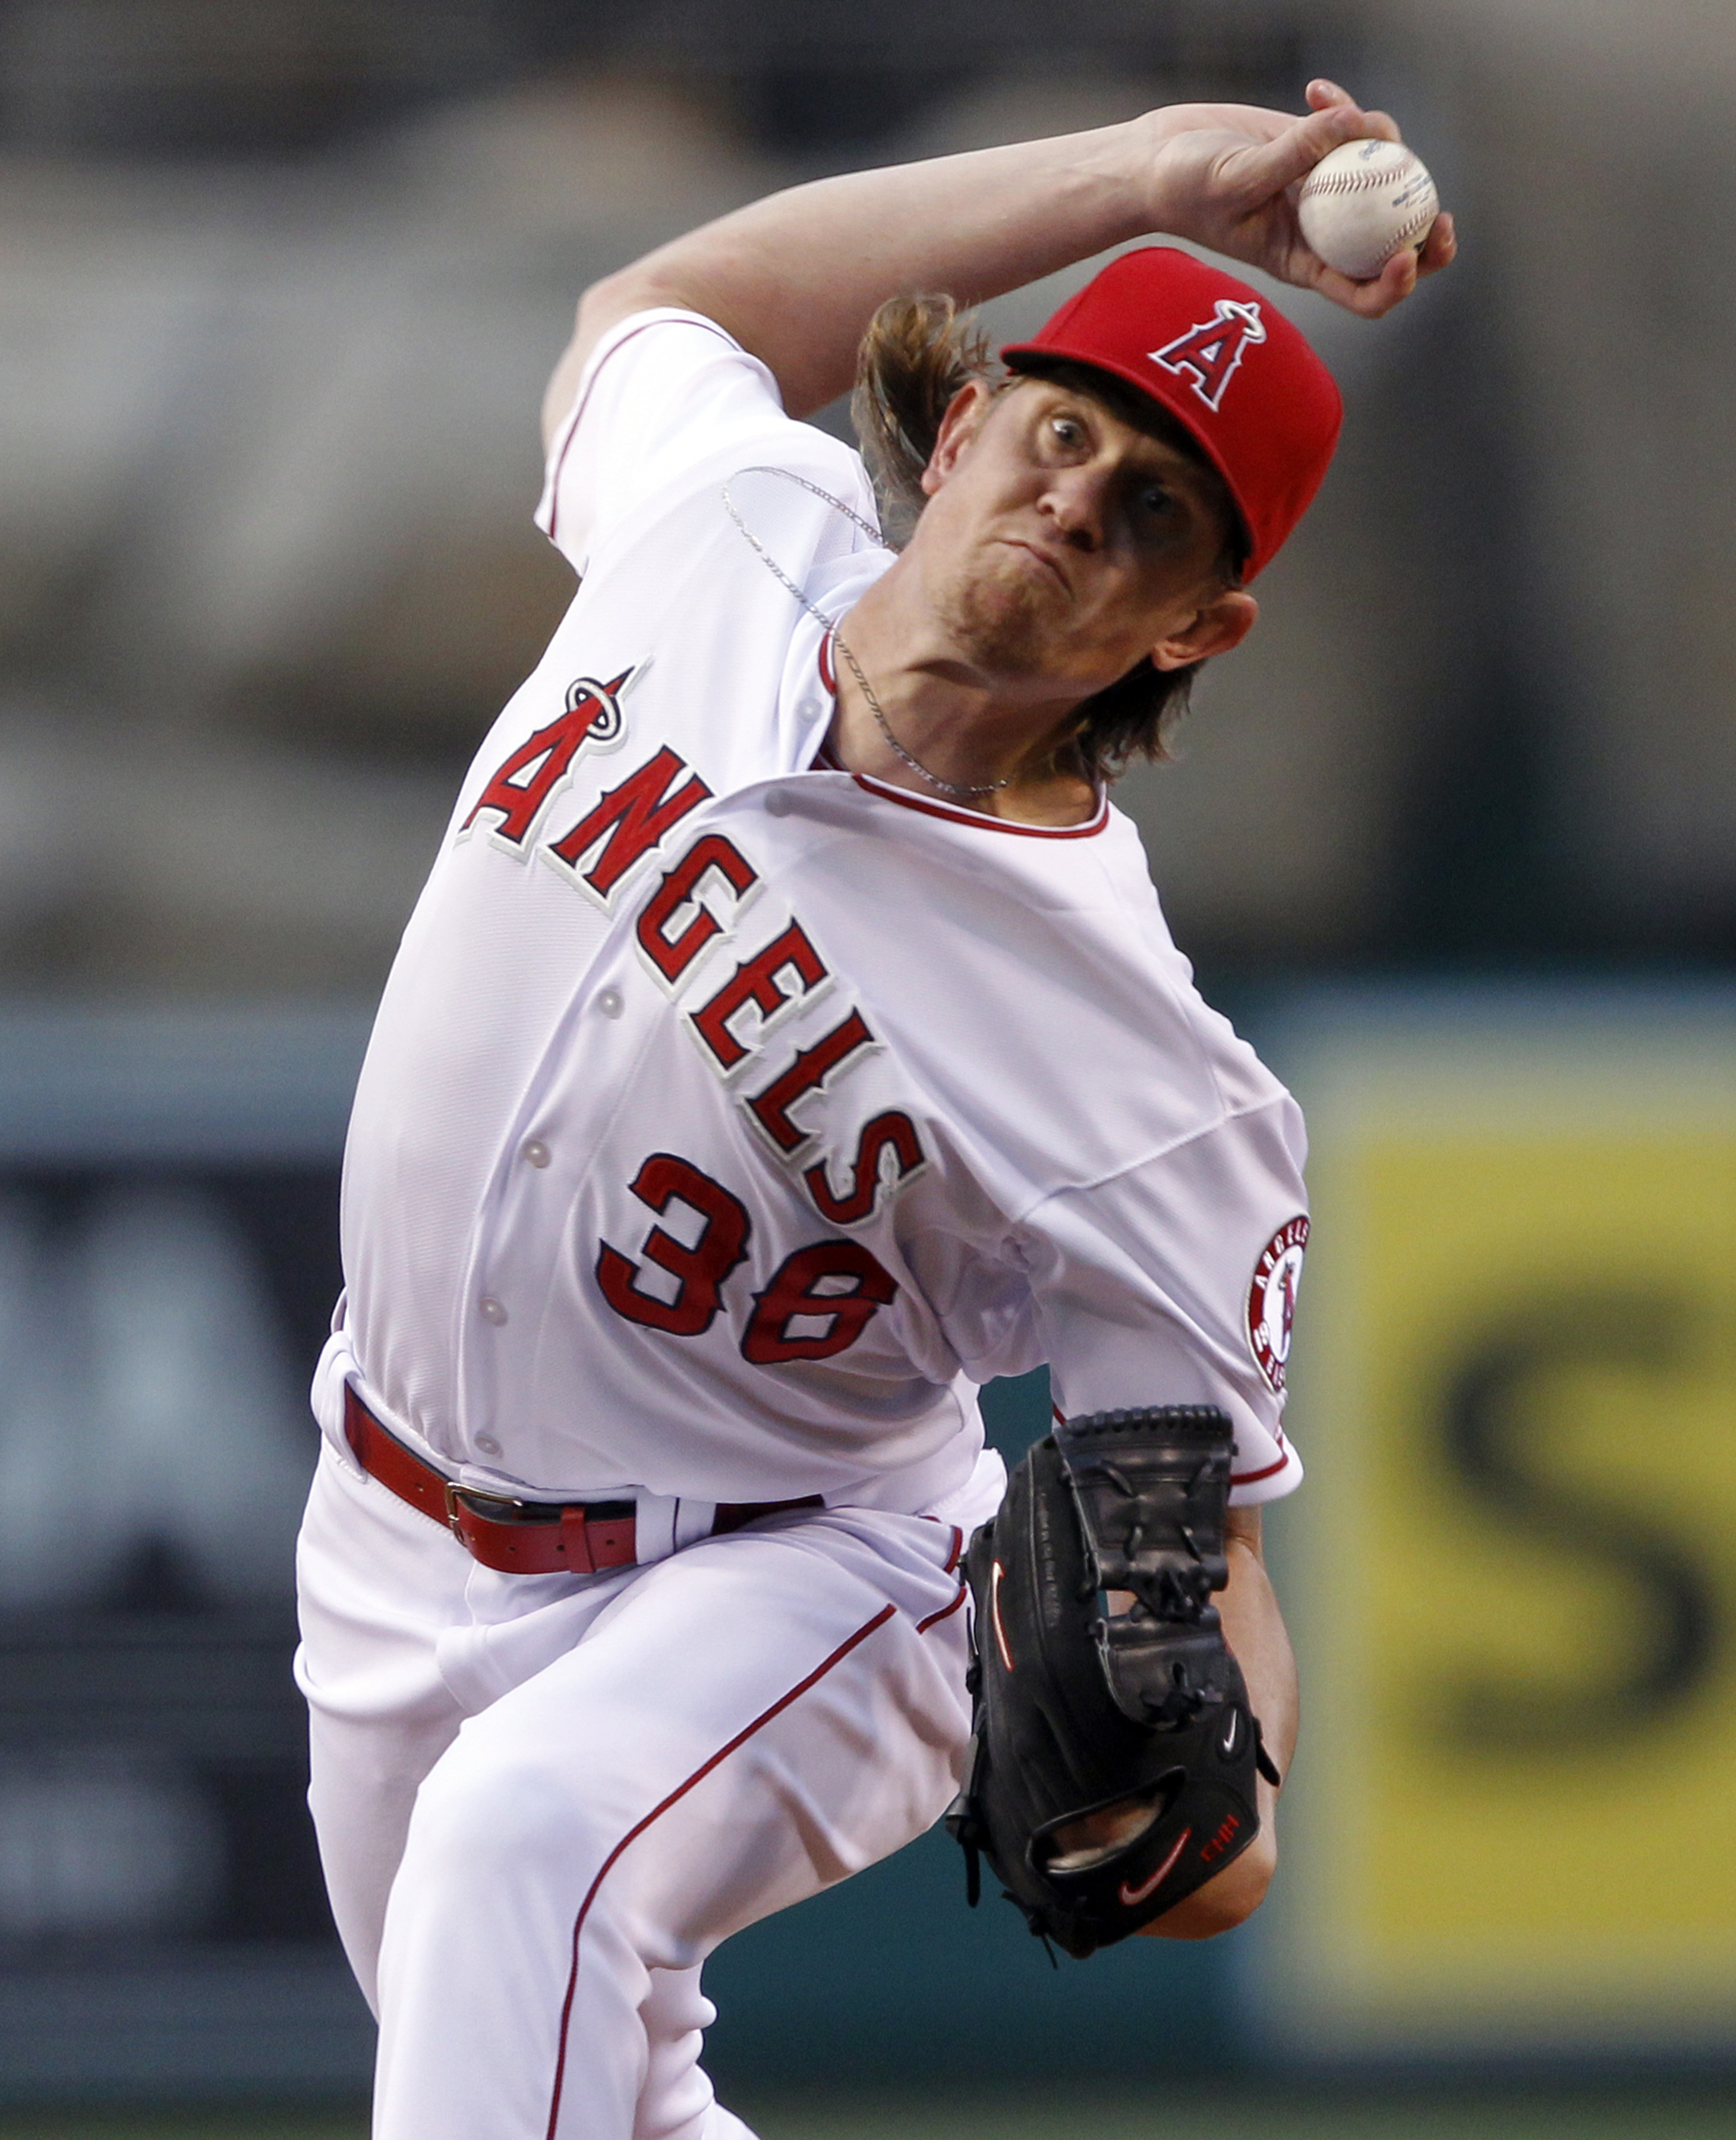 Los Angeles Angels starting pitcher Jered Weaver throws against the Houston Astros during the first inning of a baseball game in Anaheim, Calif., Friday, May 8, 2015. (AP Photo/Alex Gallardo)